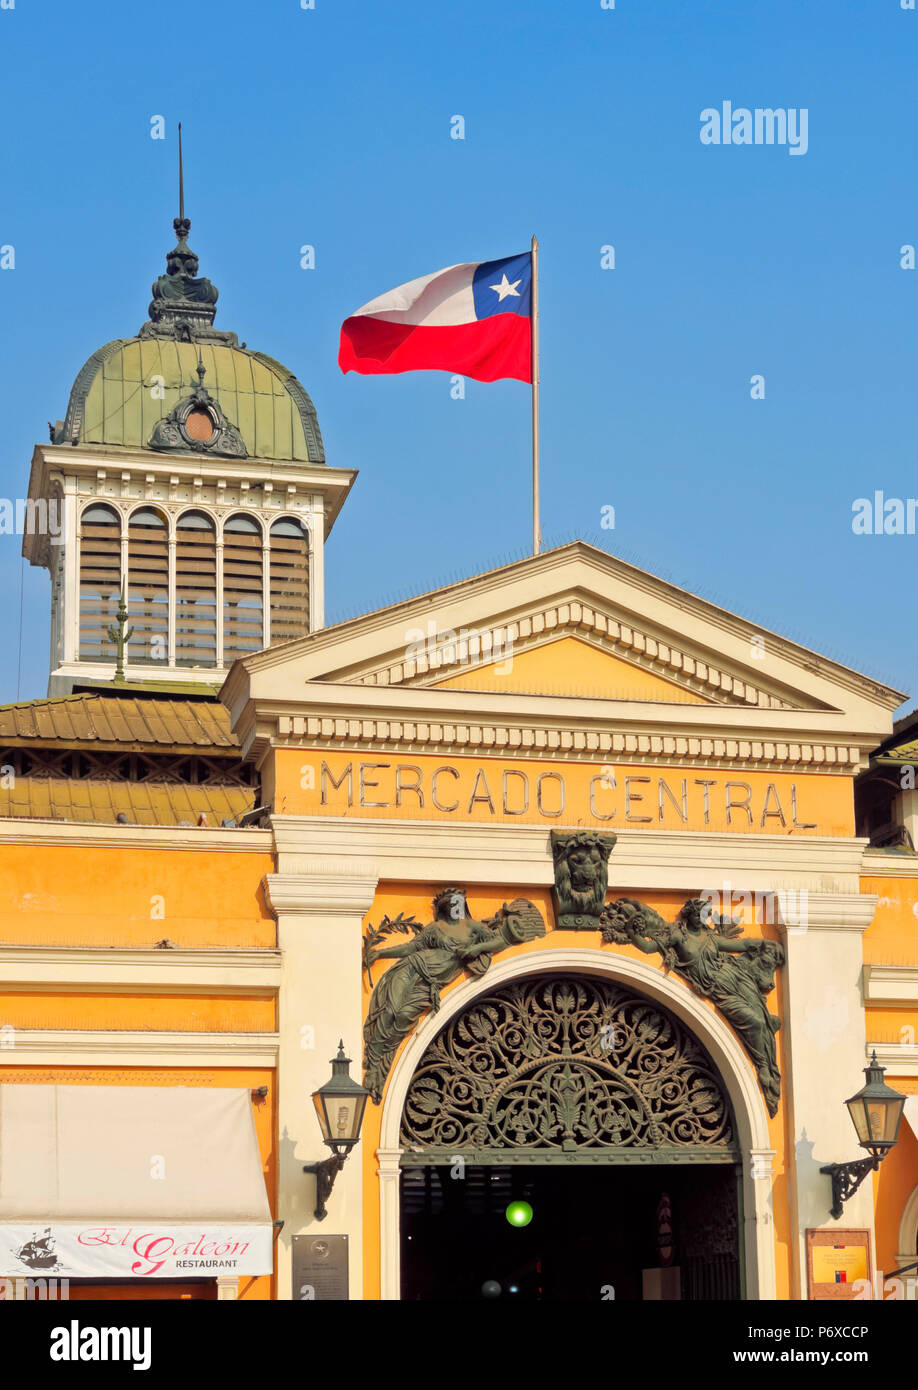 Chile, Santiago, View of the Mercado Central. - Stock Image